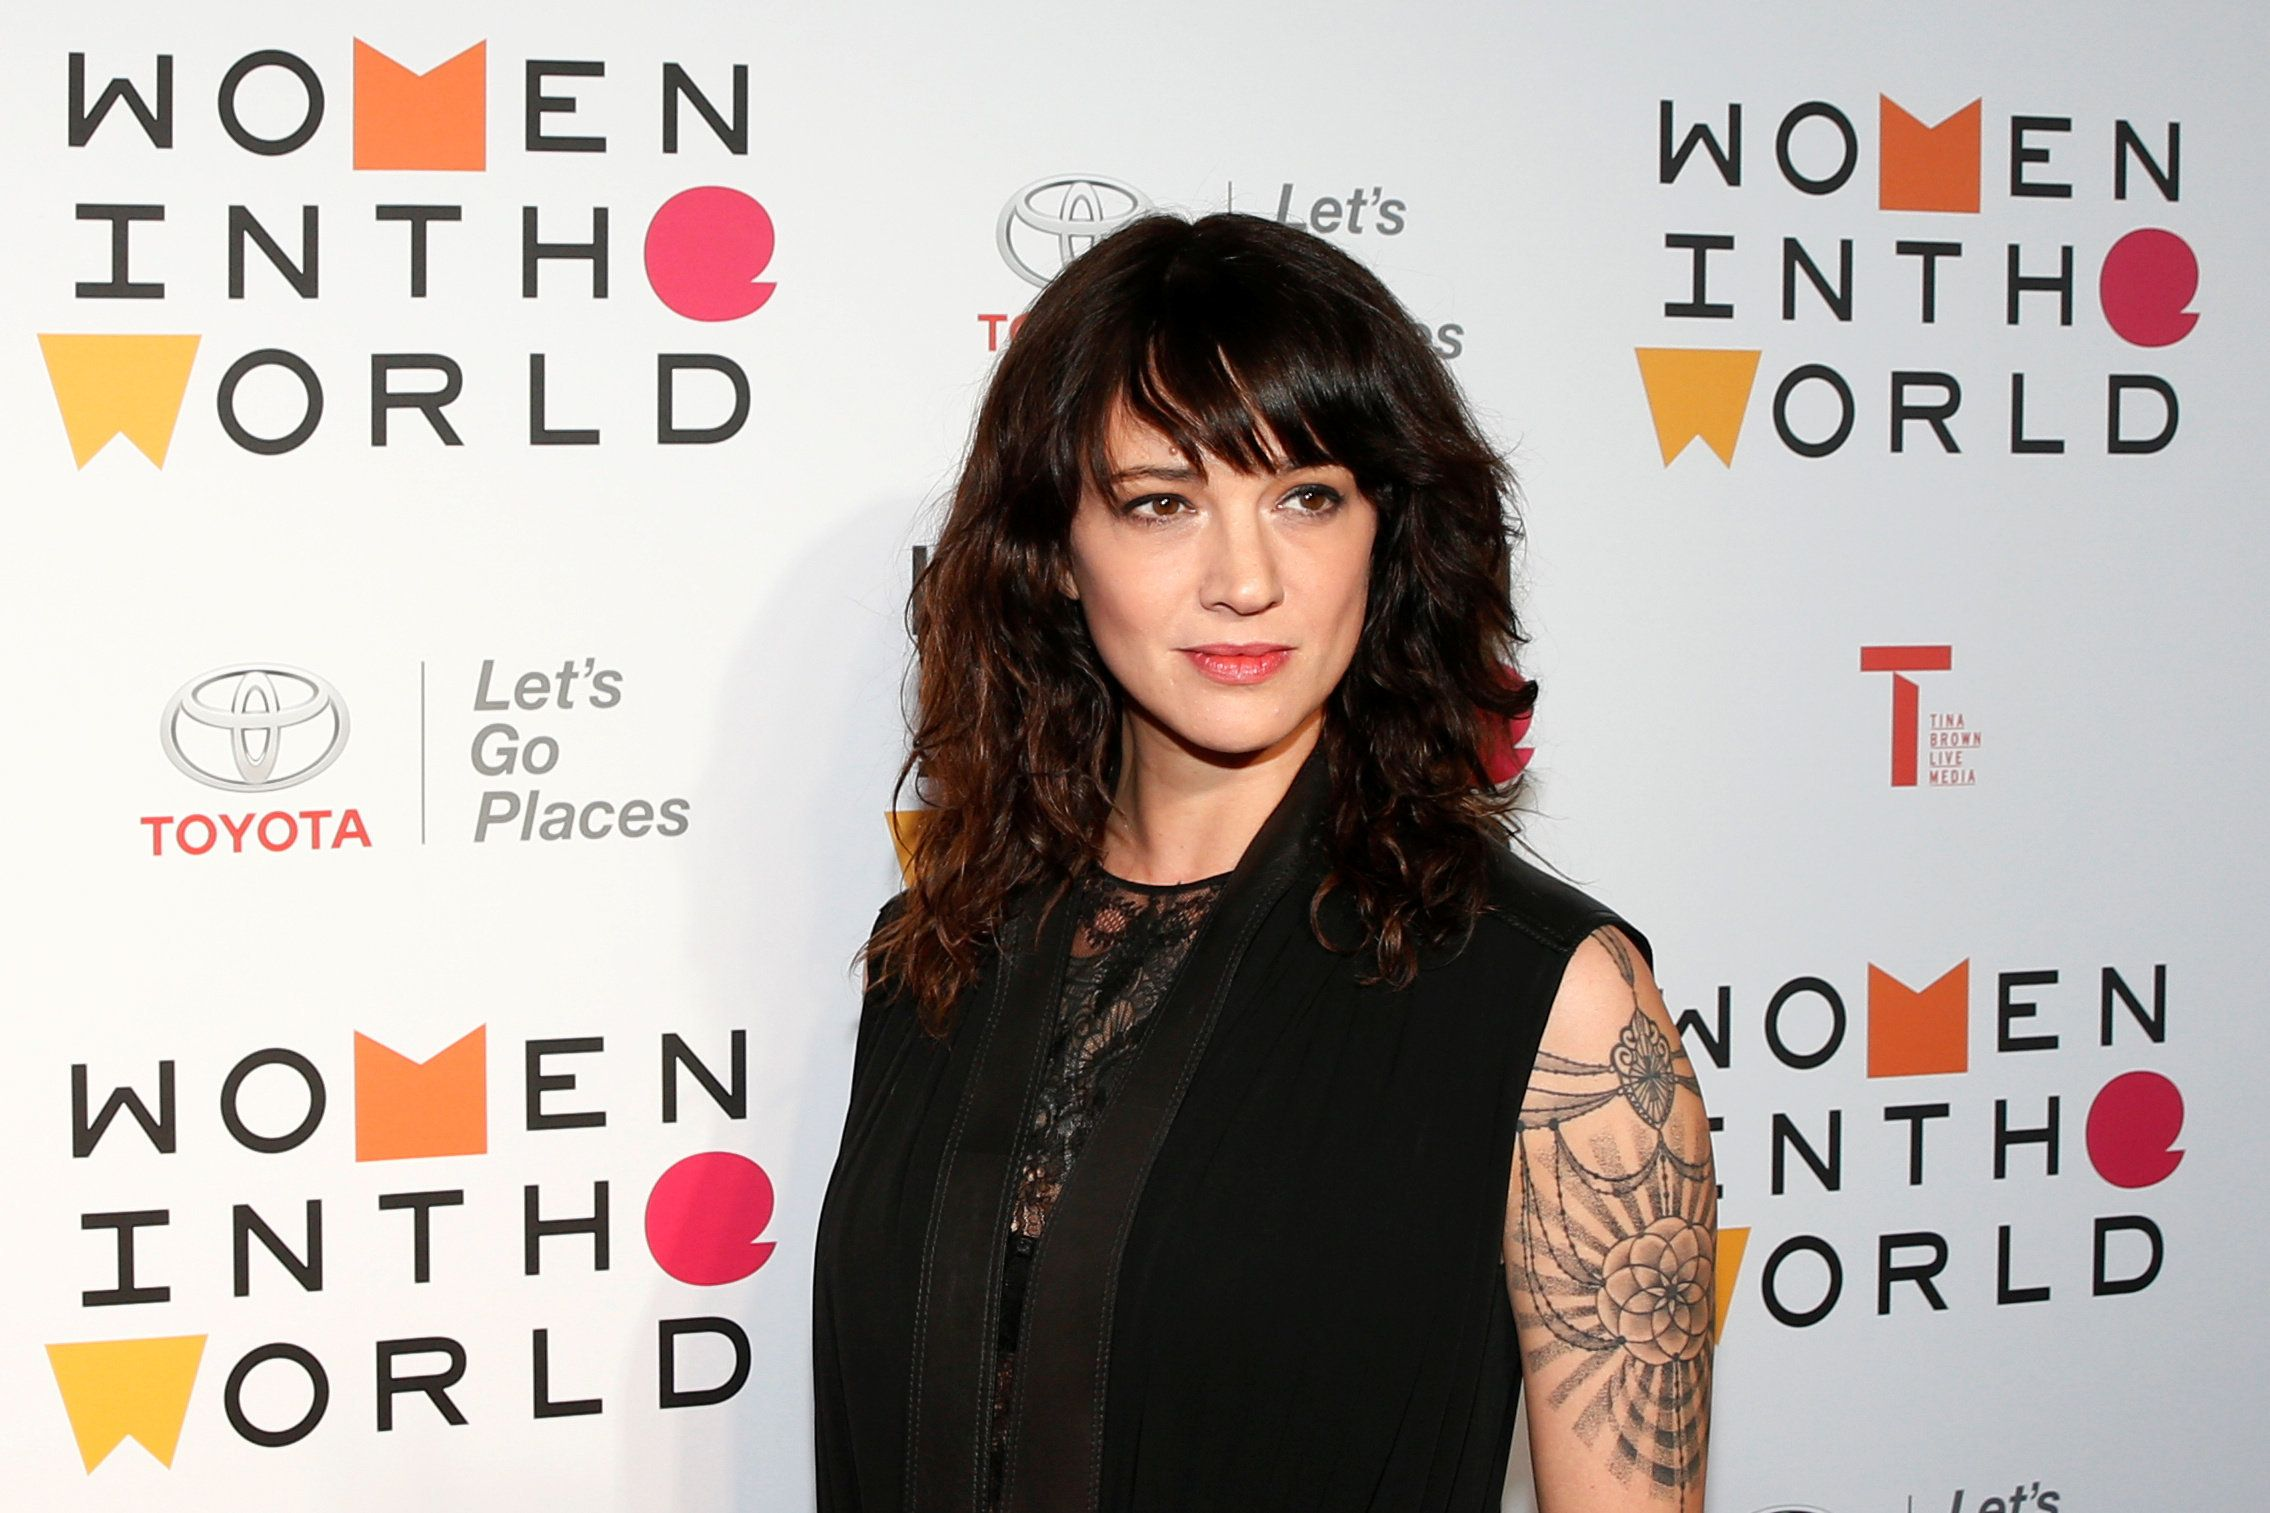 Asia Argento arrives for the Women In The World Summit in New York City, U.S., April 12, 2018. REUTERS/Brendan McDermid